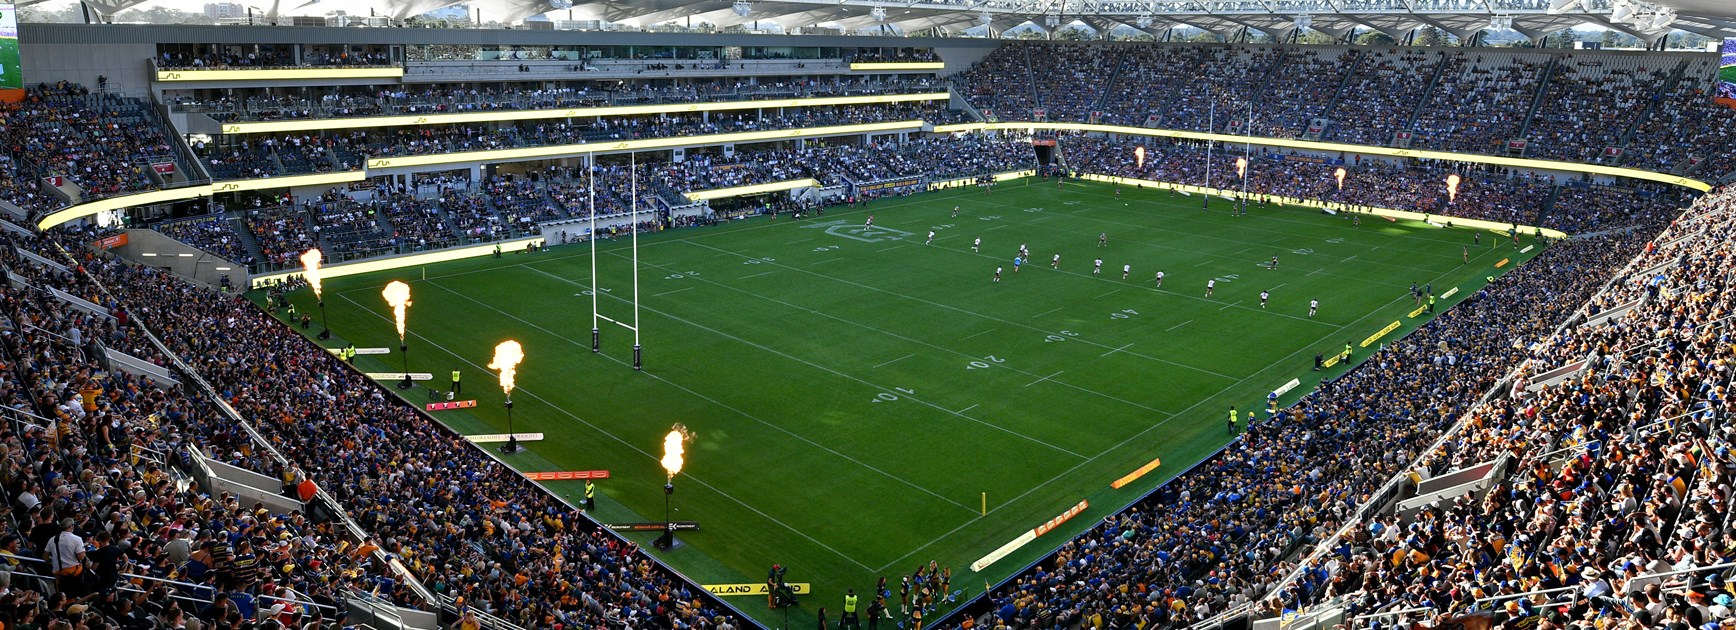 Transport included in Eels games at Bankwest Stadium